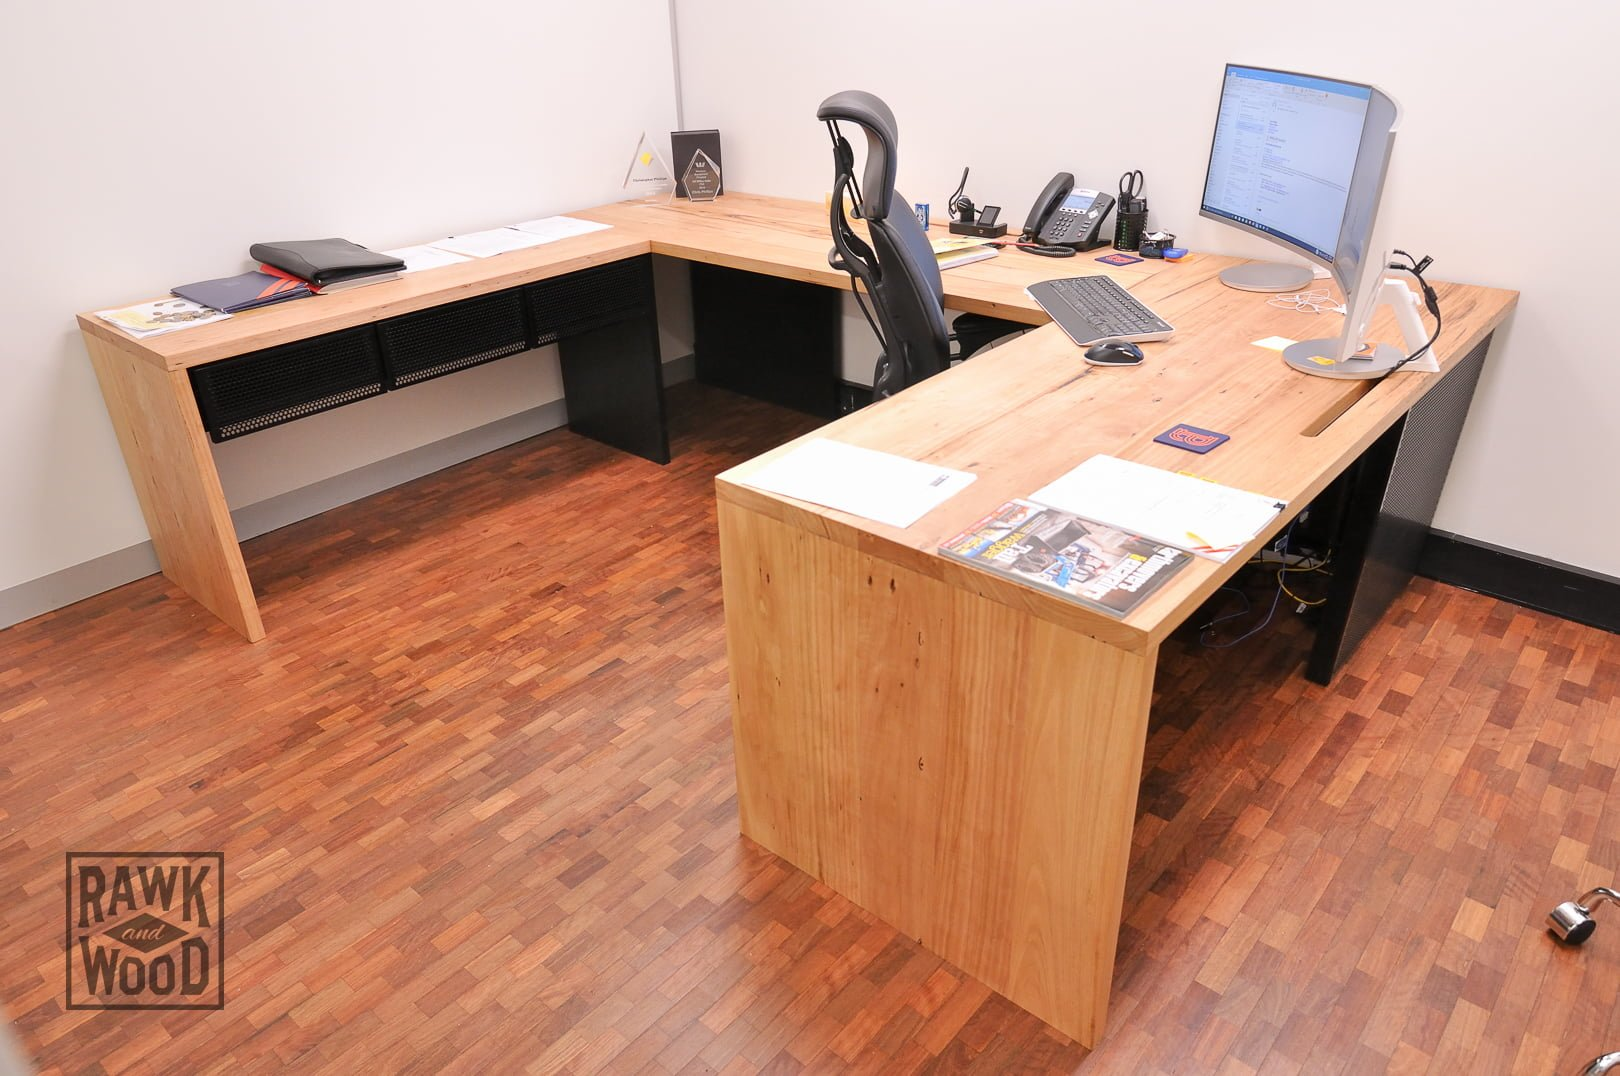 Recycled-Timber-Desk, made in Melbourne by Rawk and Wood